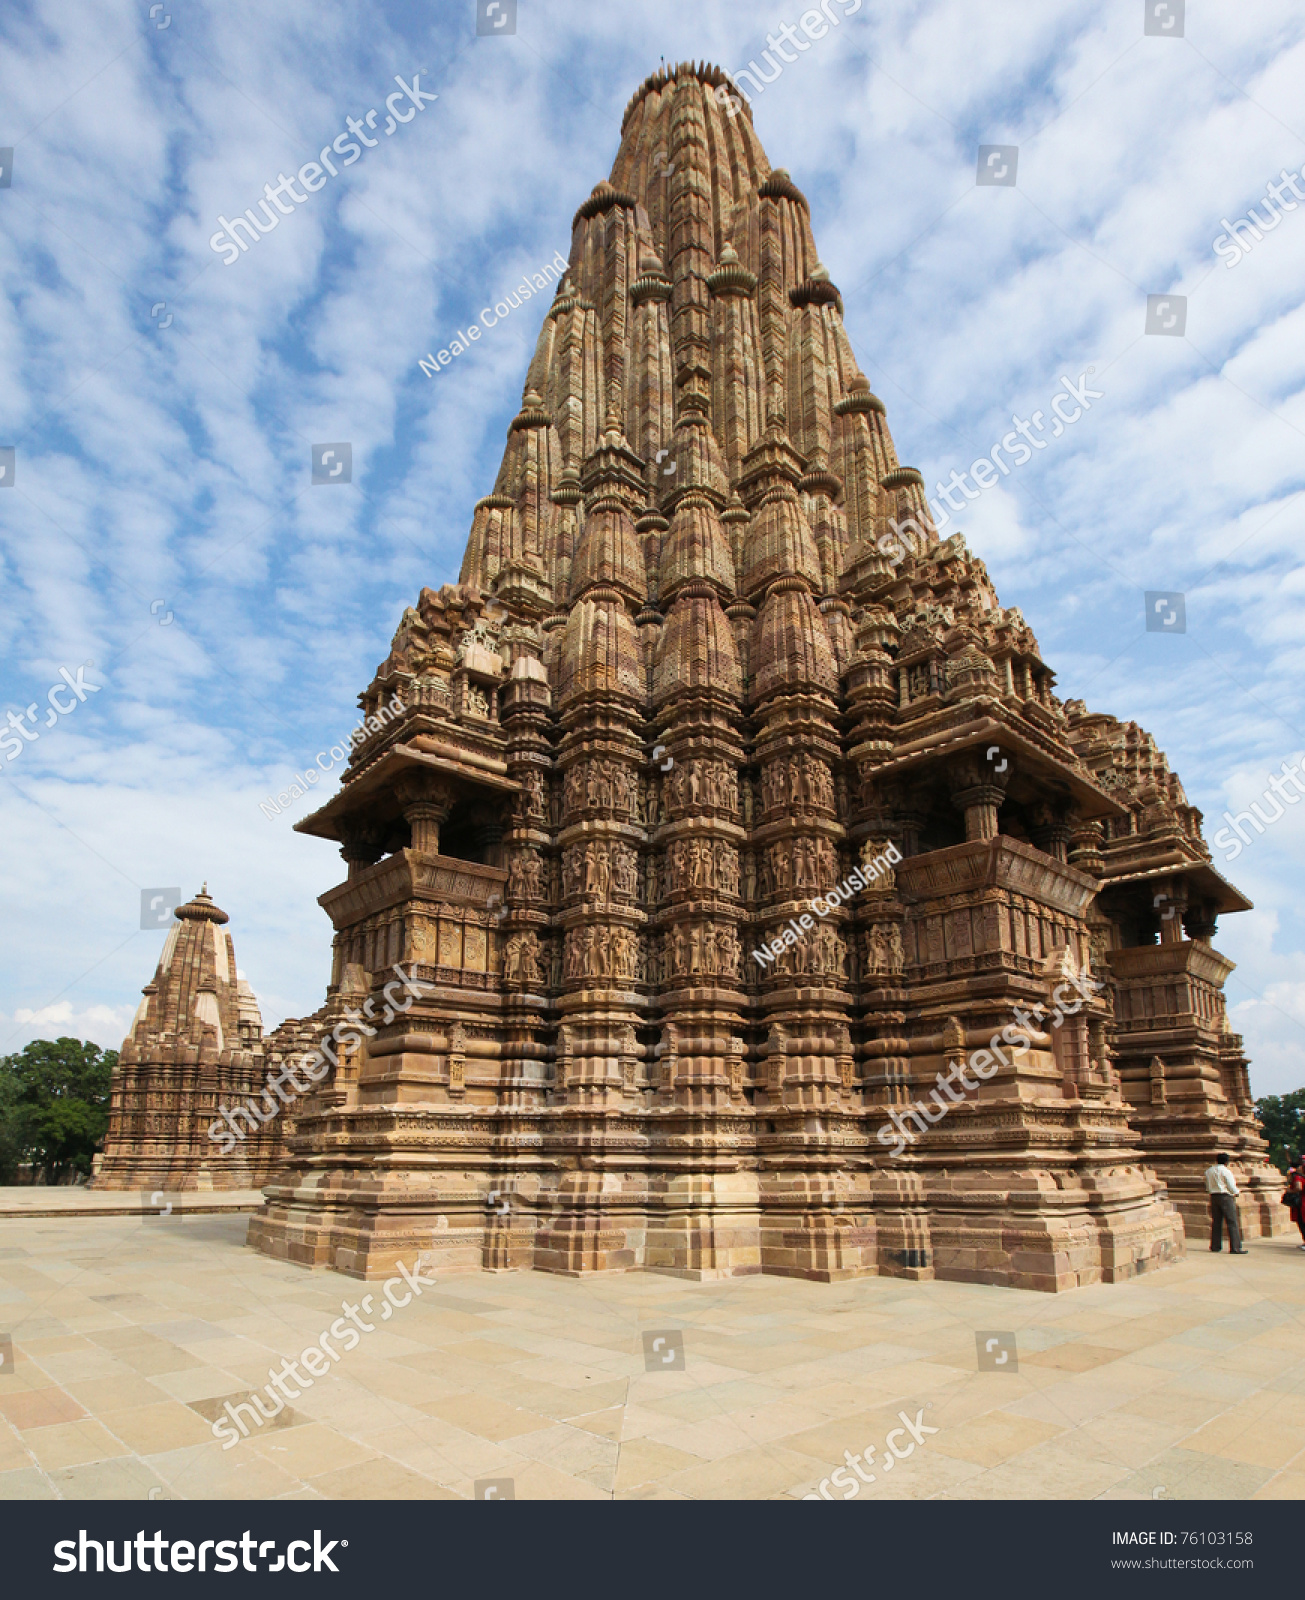 Khajuraho India  city images : Temples At Khajuraho, India Stock Photo 76103158 : Shutterstock